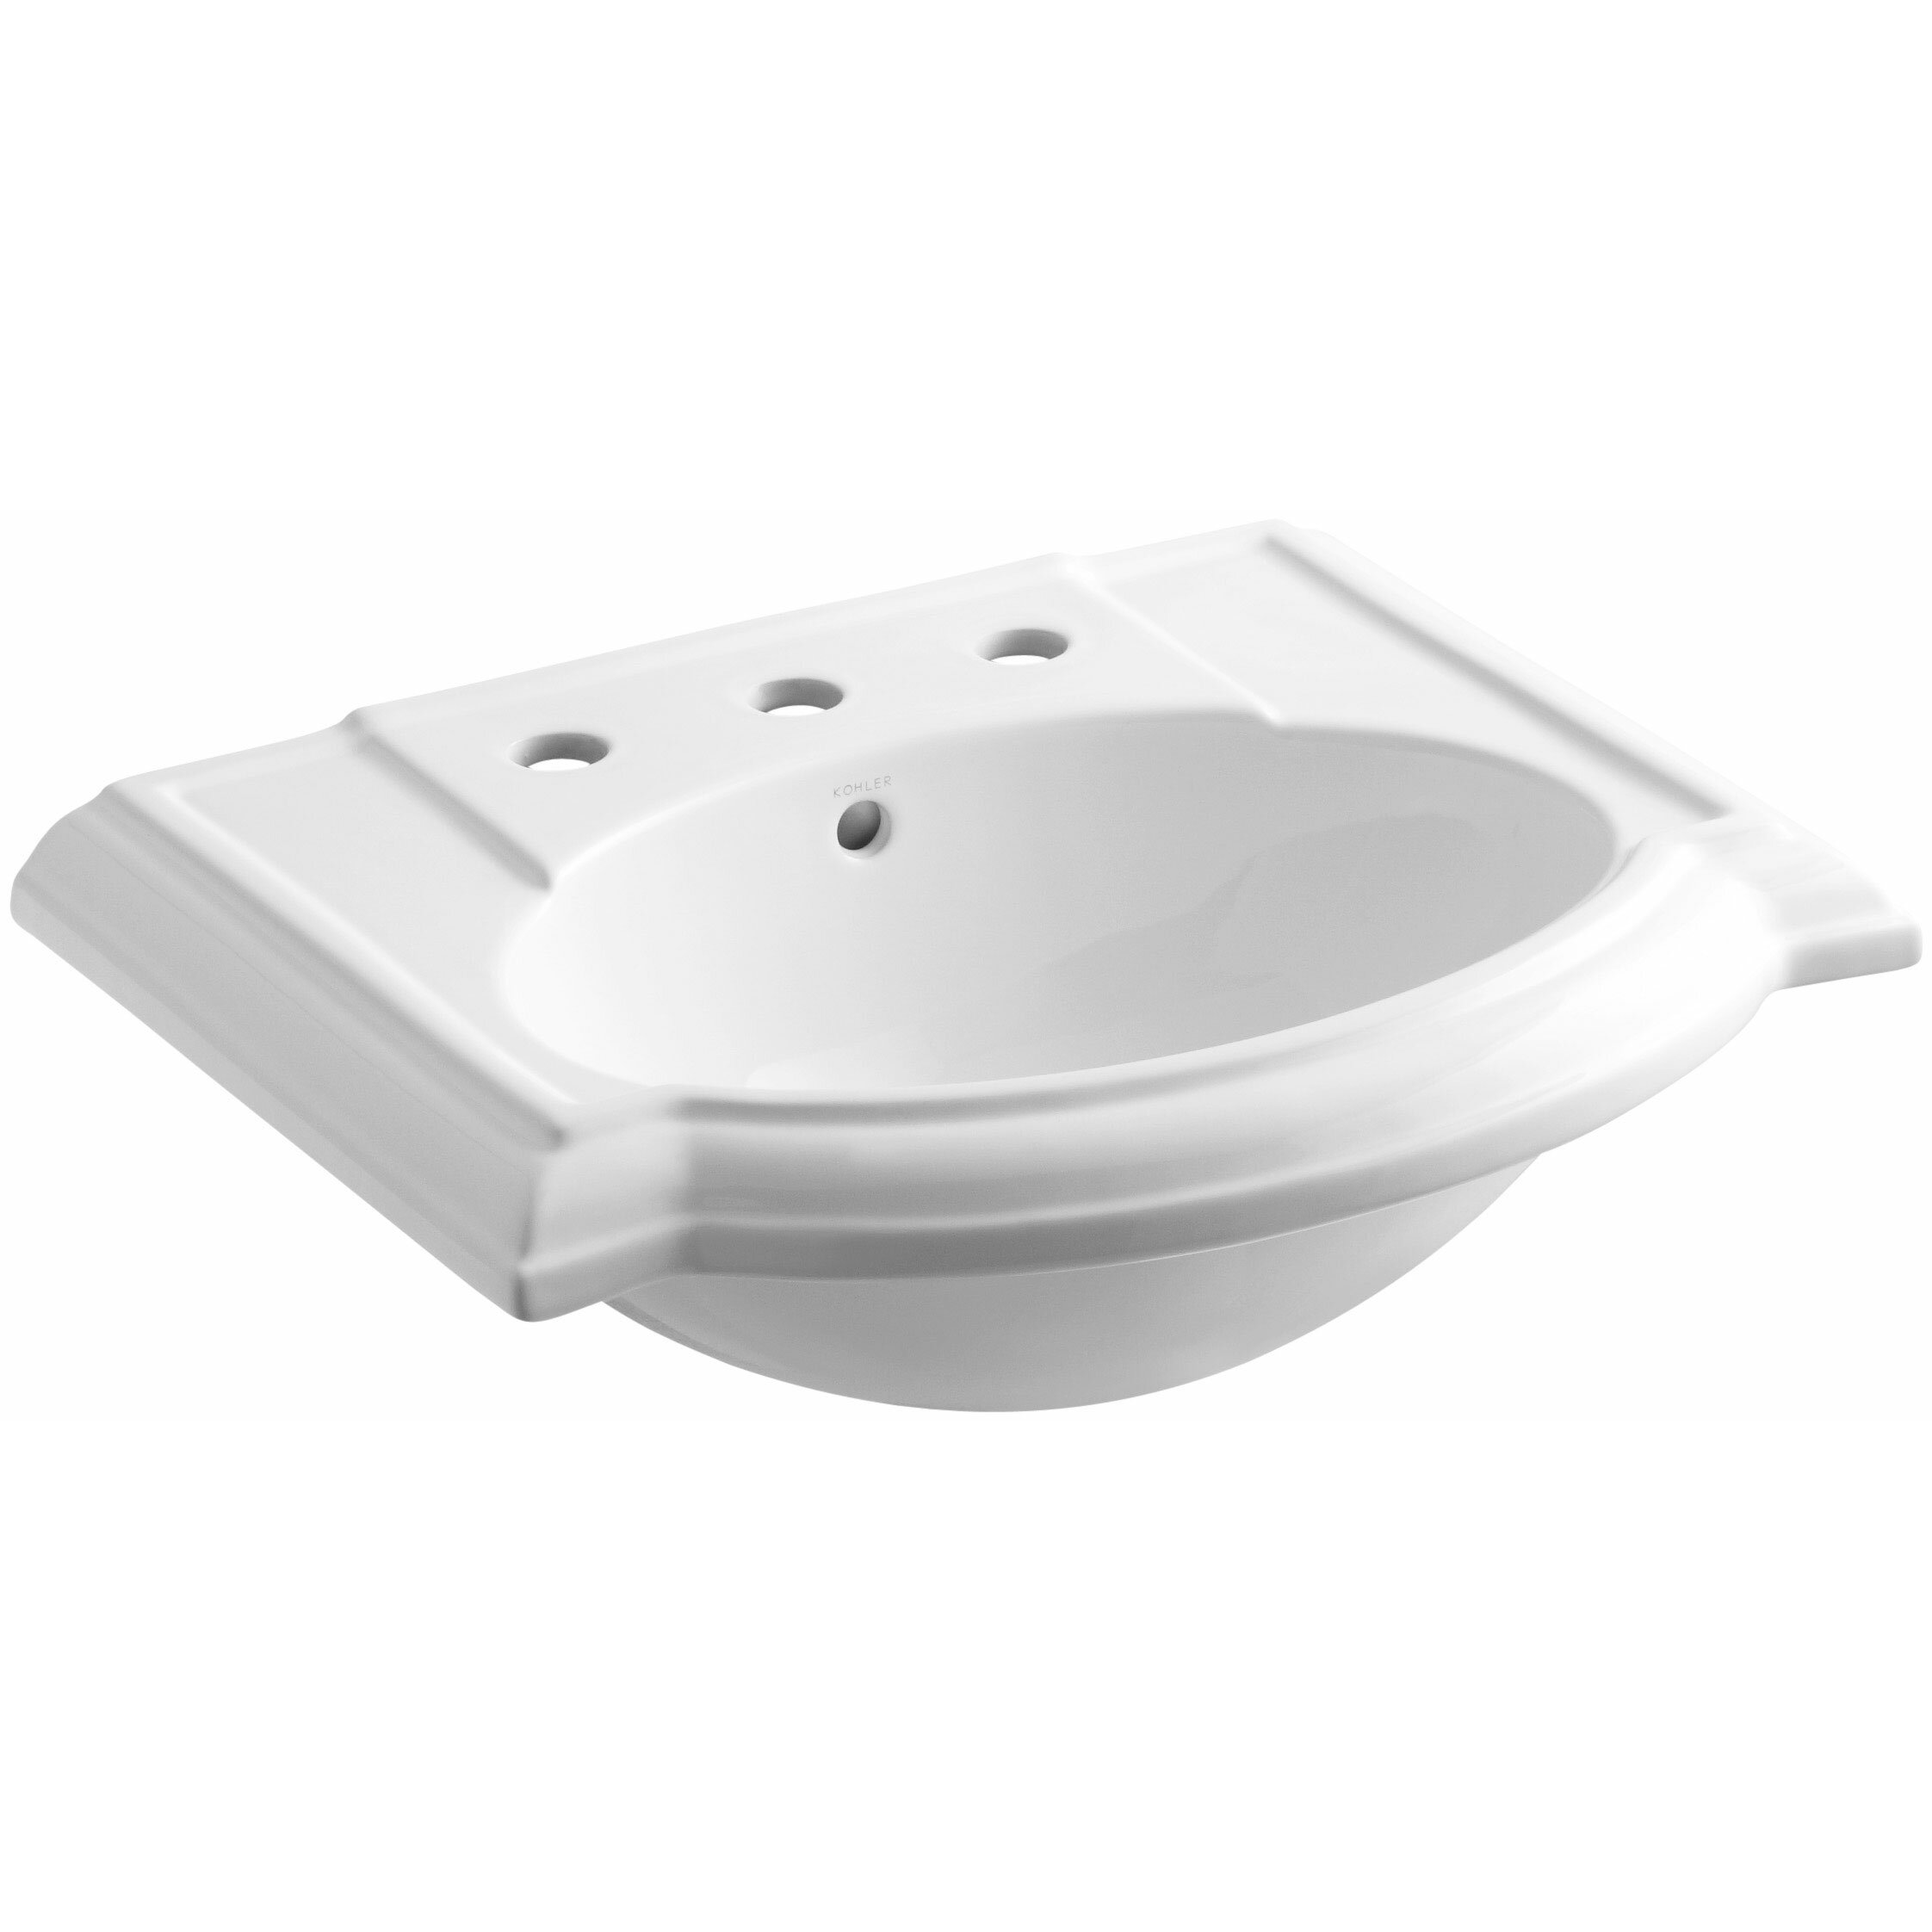 Kohler devonshire bathroom sink with 8 widespread faucet holes reviews wayfair - Kohler devonshire reviews ...